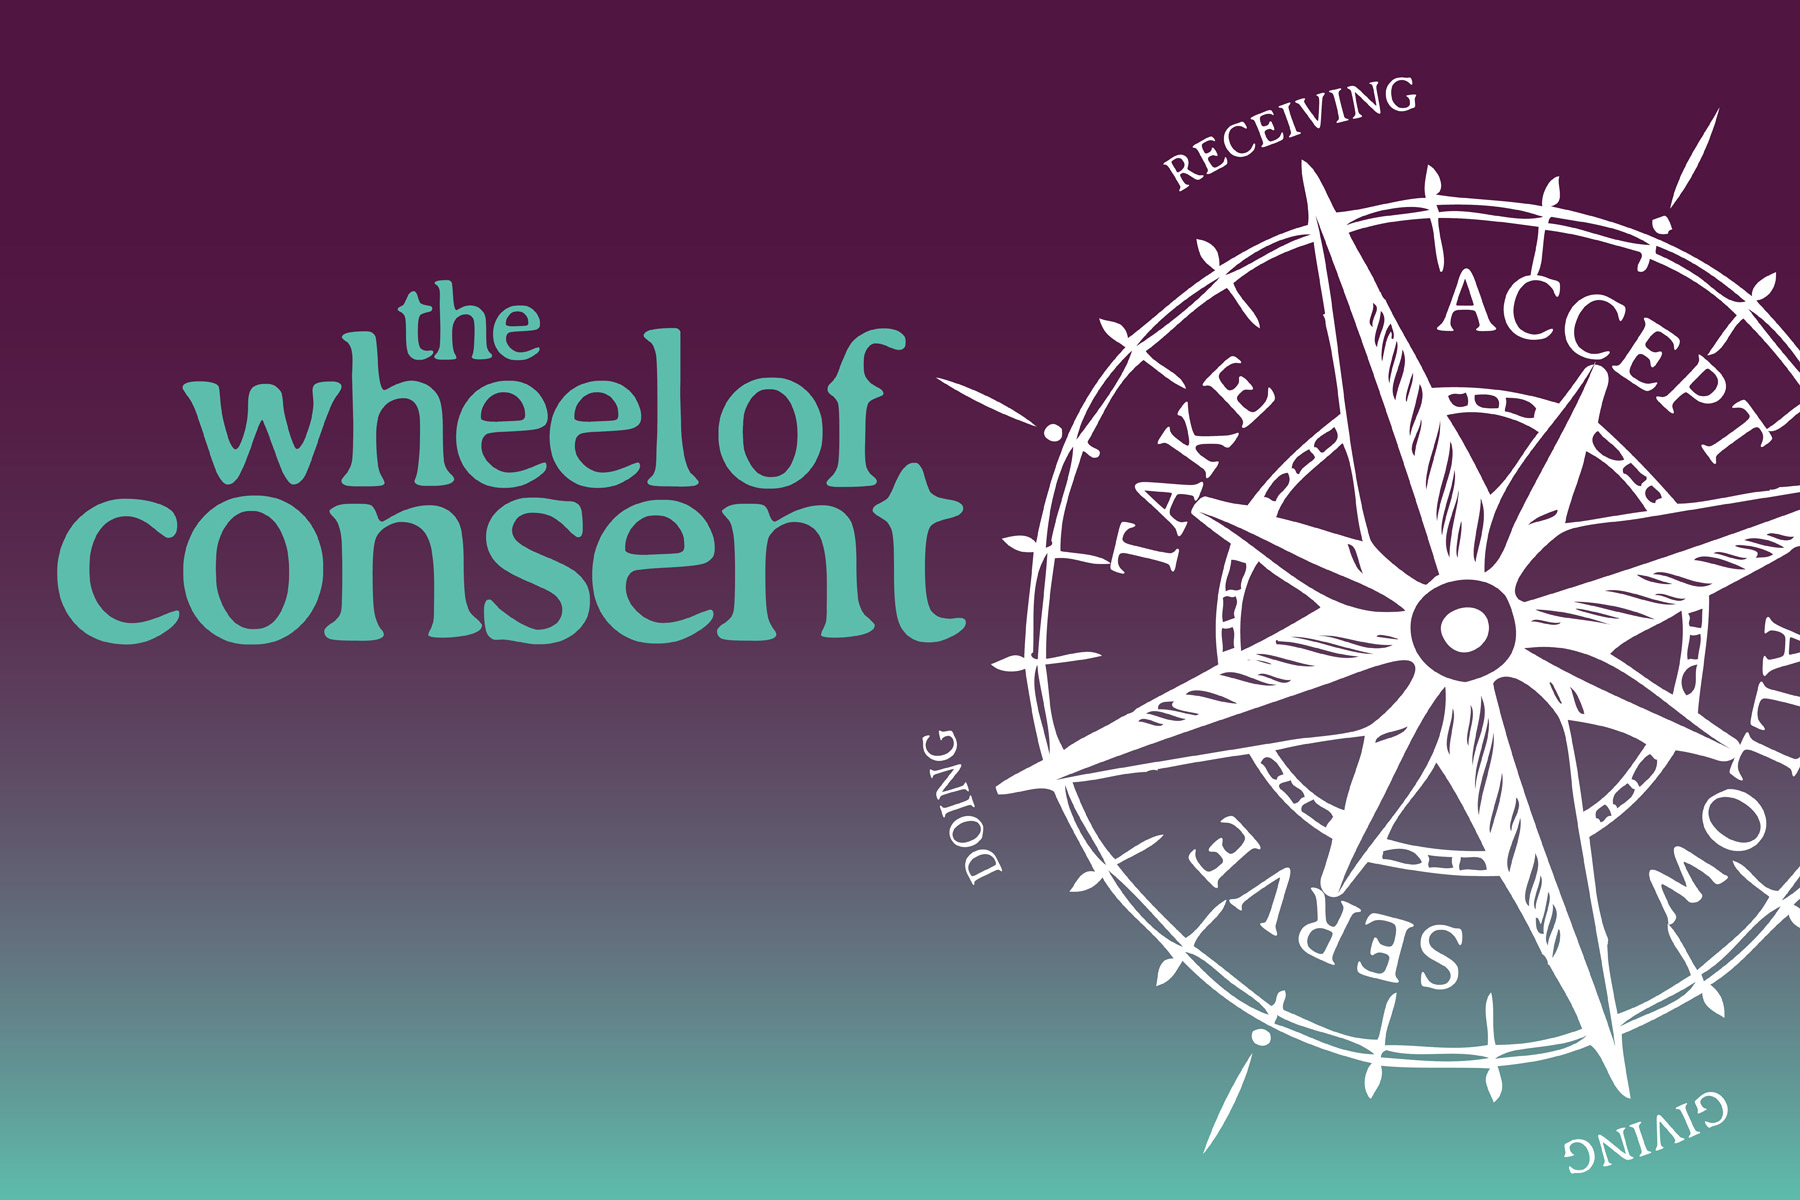 image showing the wheel of consent